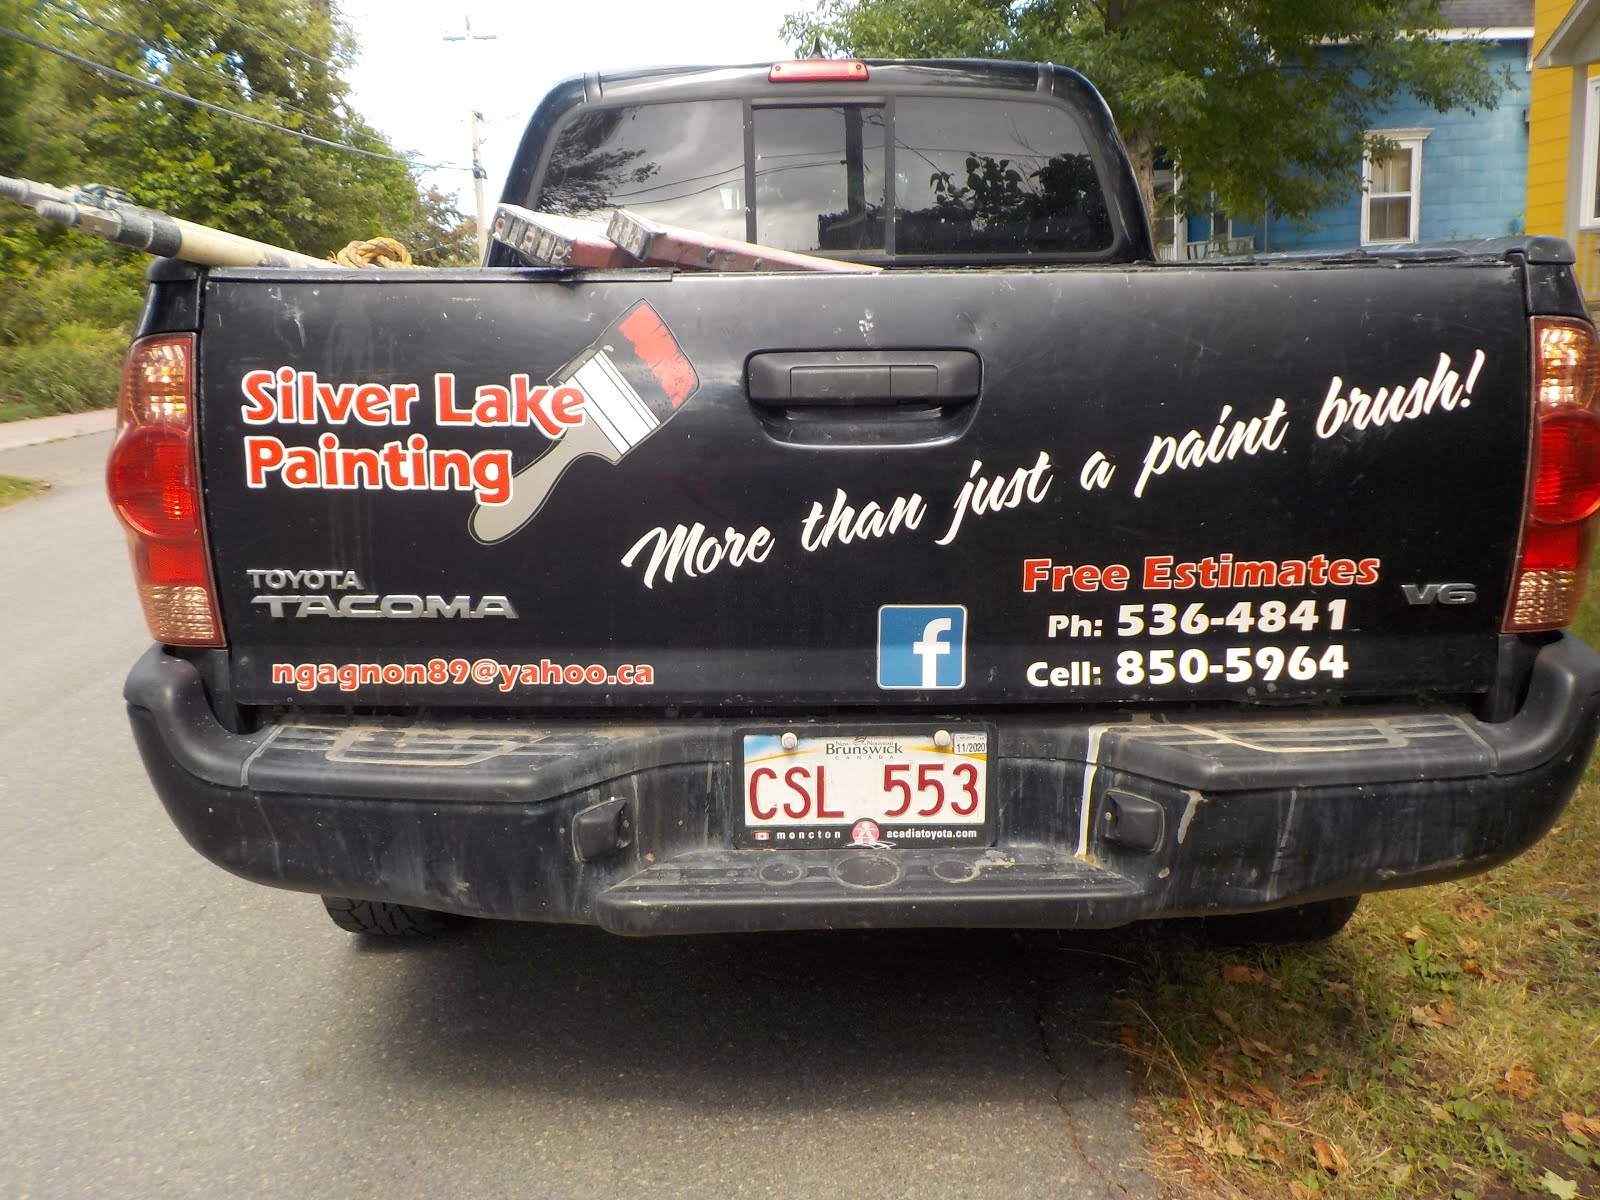 Silver Lake Painting - Contractor in Tantramar